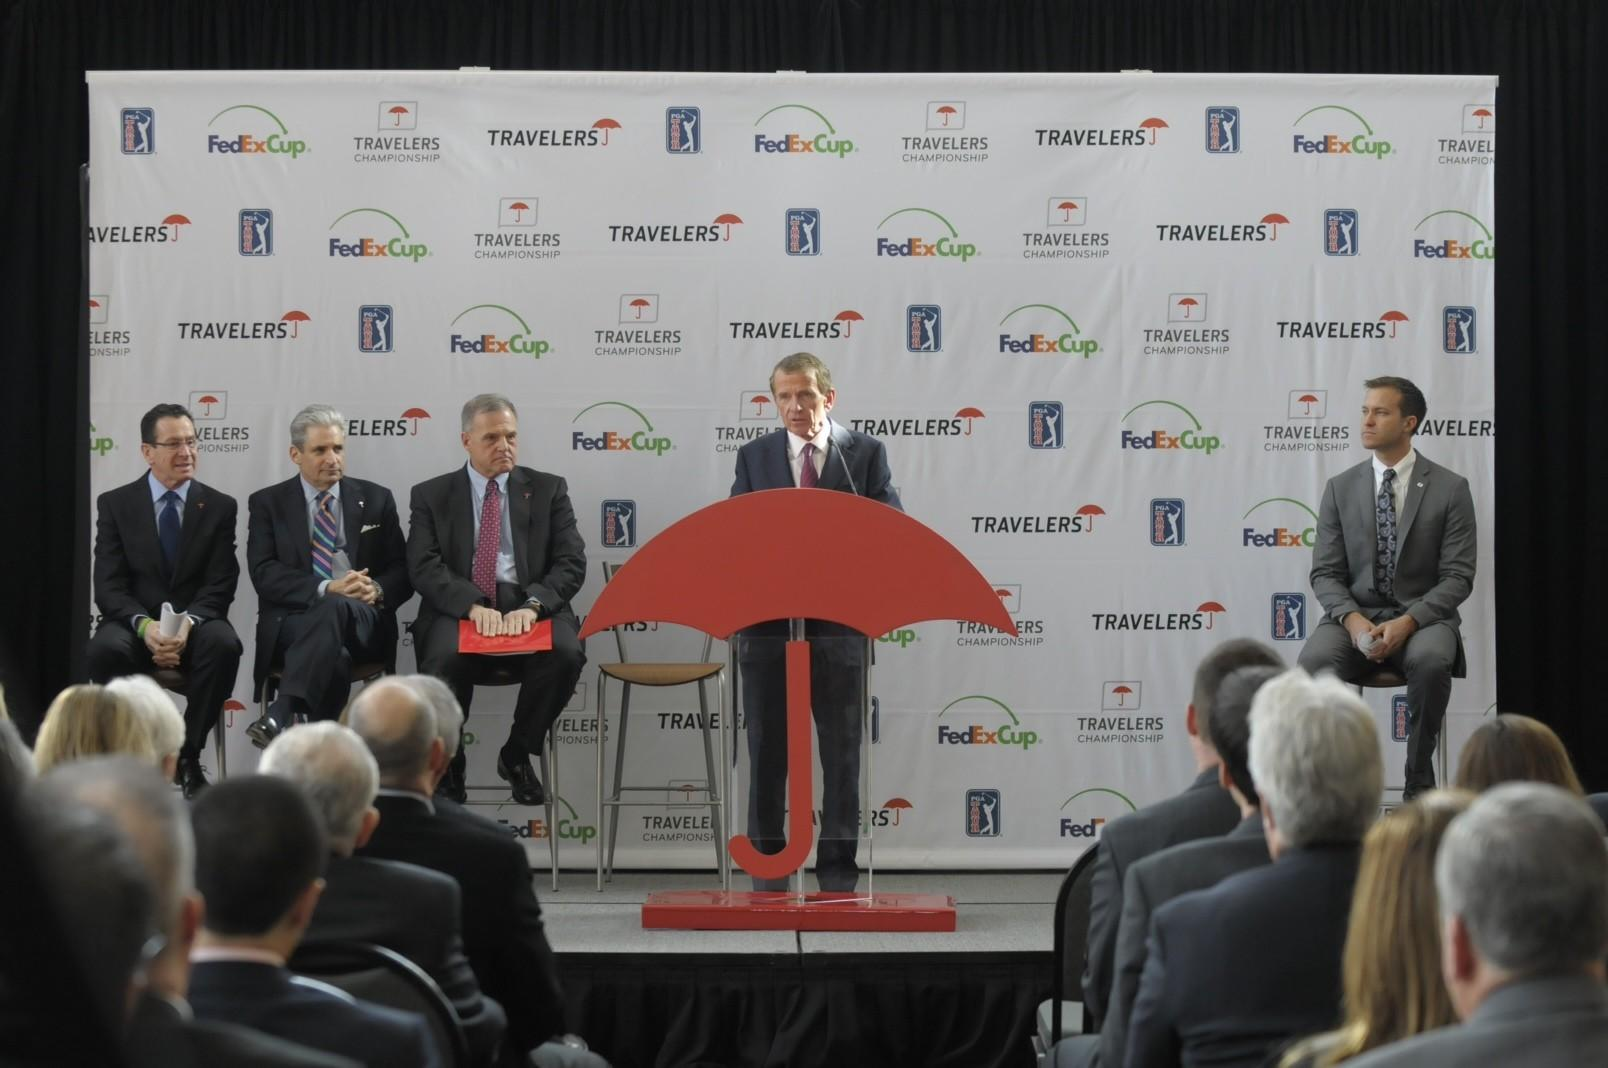 PGA Tour Commissioner Tim Finchem speaks at Travelers PGA TOUR press conference in Hartford on Thursday morning. A new sponsorship agreement extends the Travelers Championship for another 10 years.